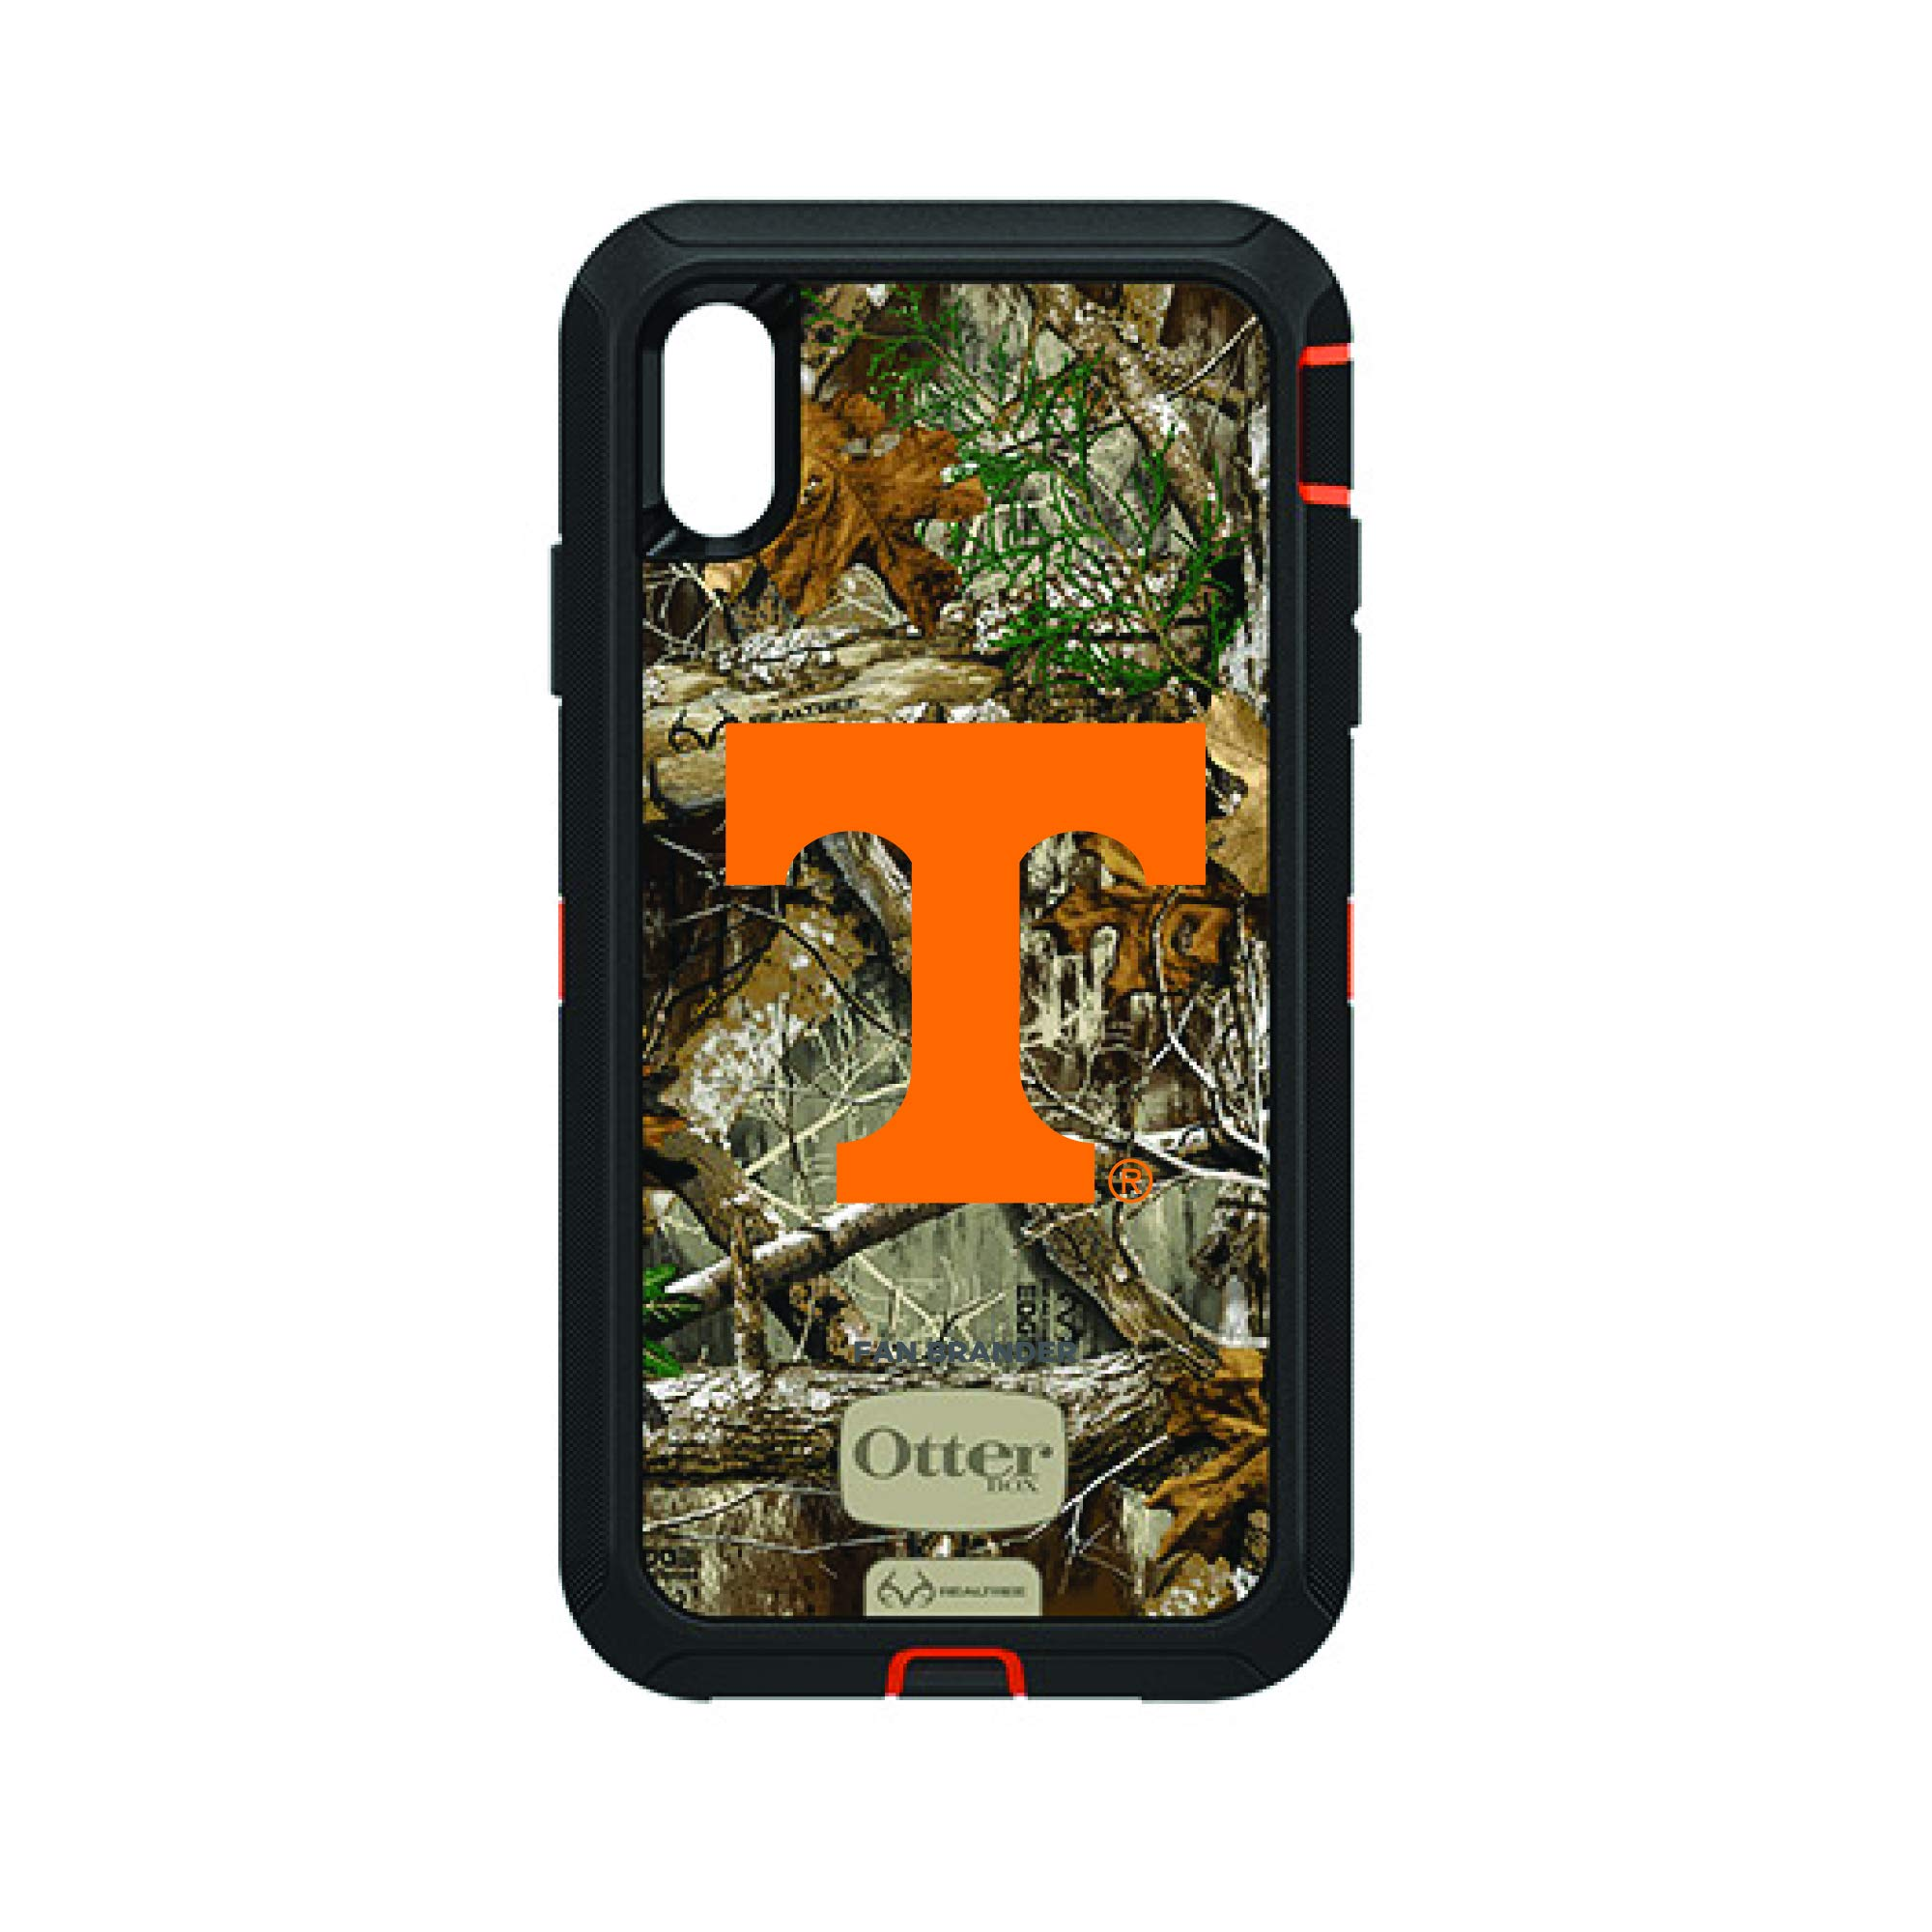 Fan Brander NCAA Black Phone case with Realtree Background, Compatible with Apple iPhone Xs Max and with OtterBox Defender Series (Tennessee Vols)